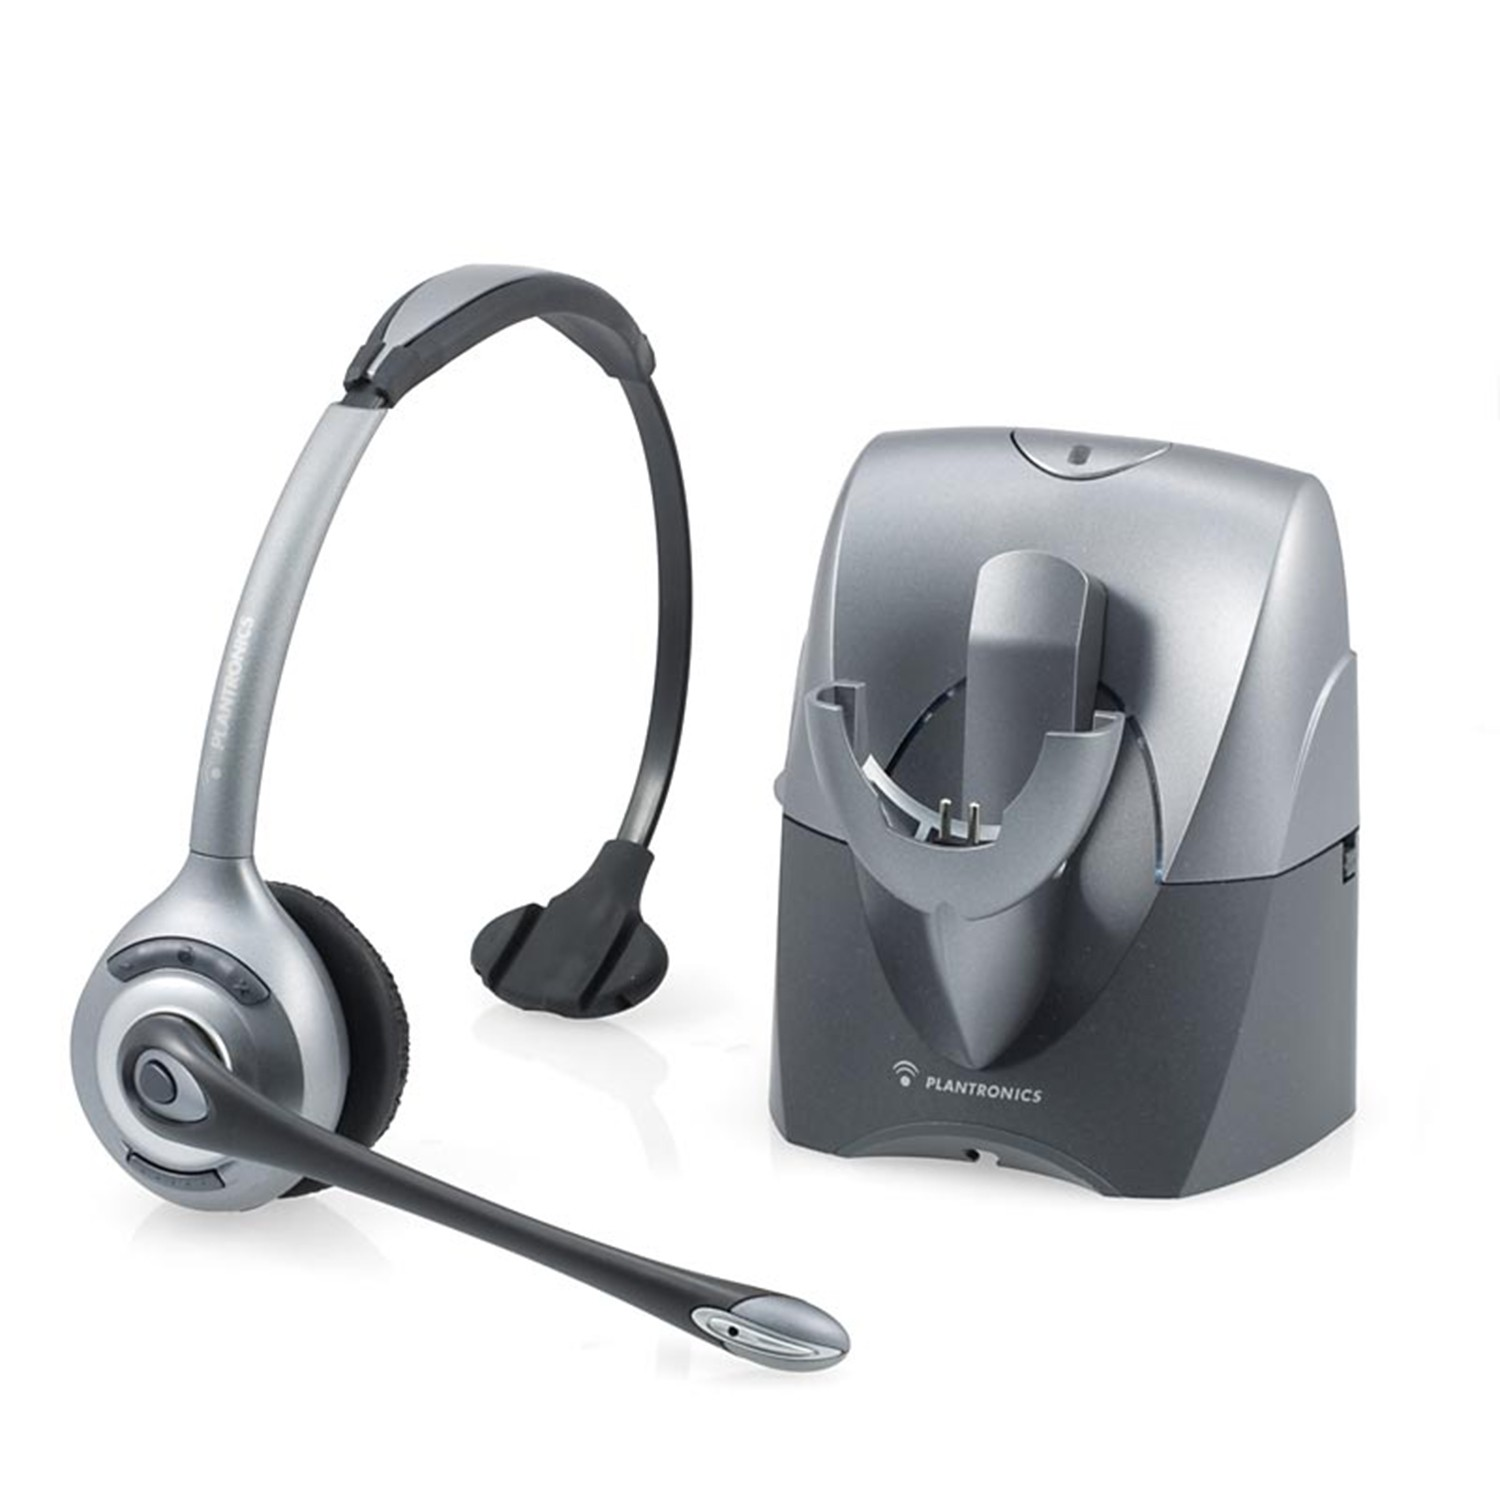 Plantronics CS351N Supra - Noise Cancelling Cordless Headset - A GRADE